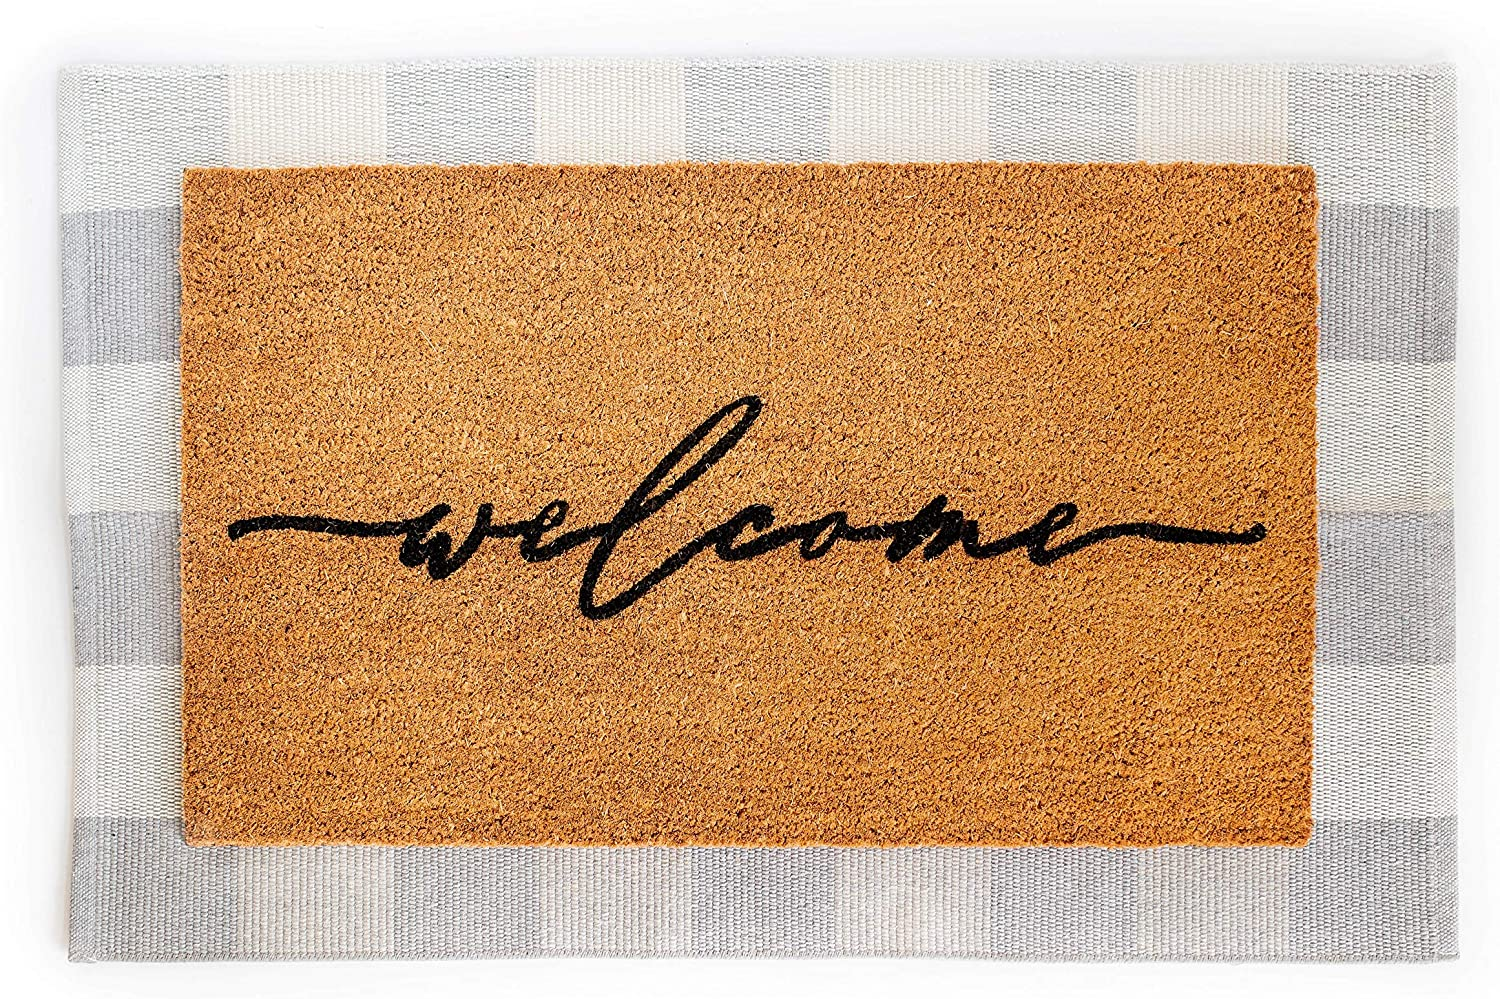 Layered Outdoor Welcome Mat Set - Coconut Coir (18-inch x 30-inch) and Woven Doormat (24-inch x 35-inch) Combo Inside or Outside Pet Friendly Rug for Entry Porch, Deck, Patio, or Mudroom (Gray Check)